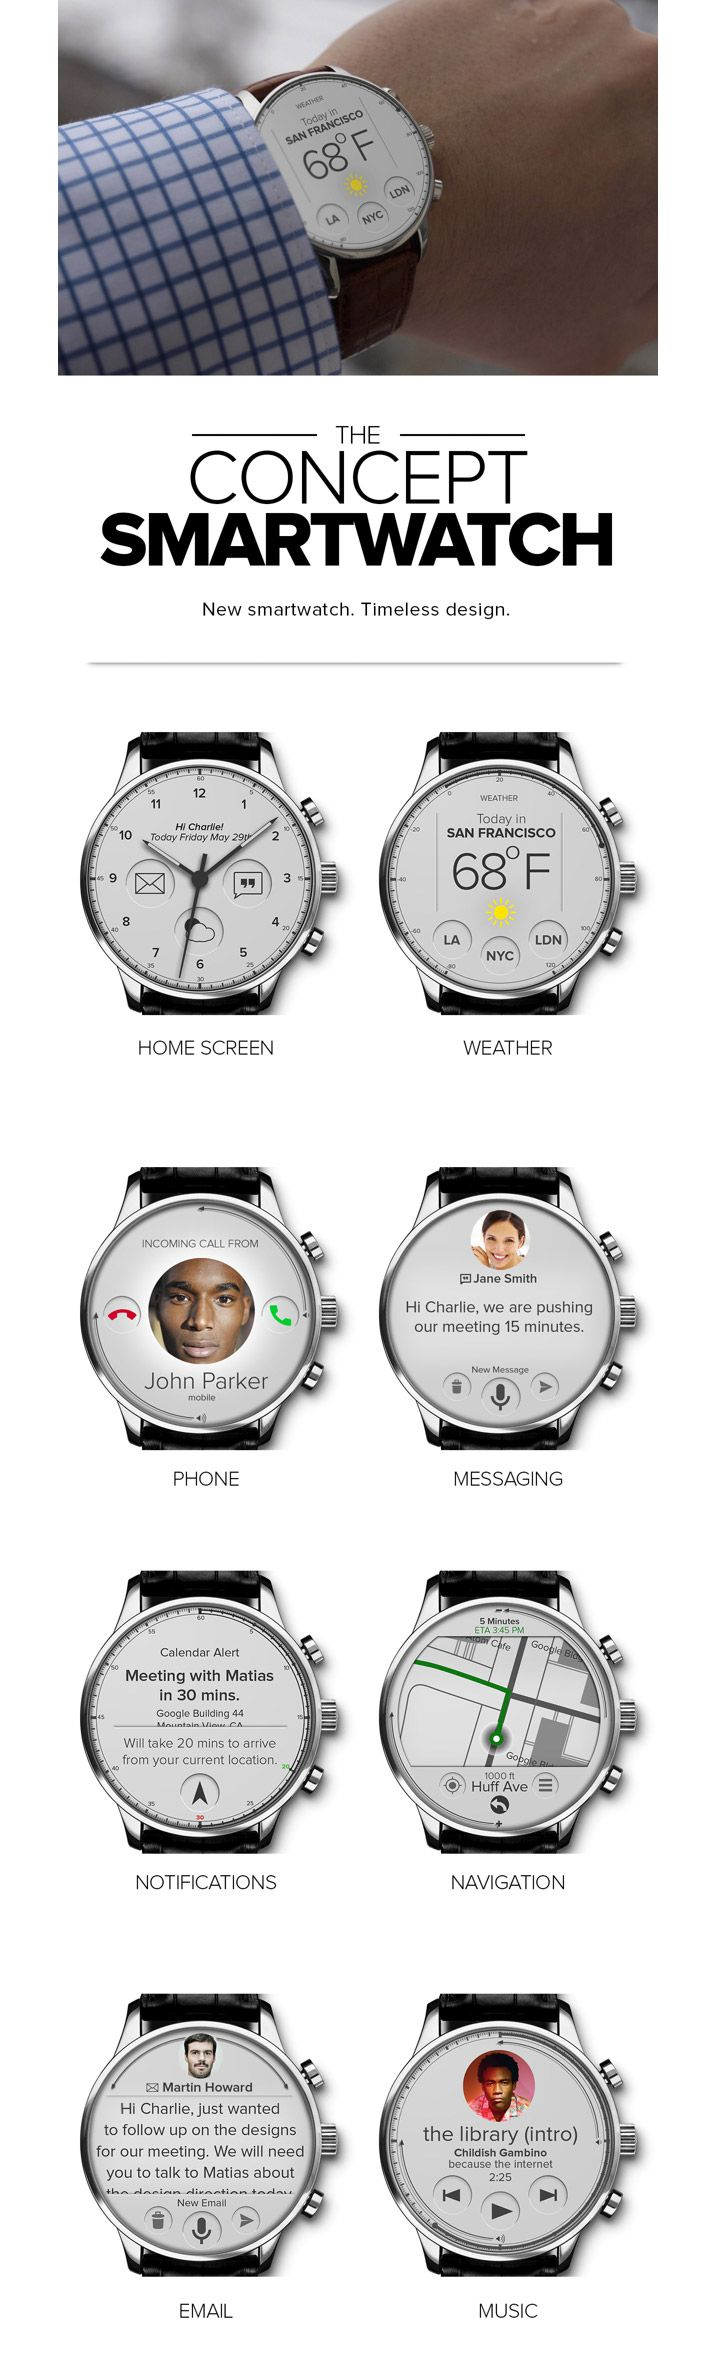 Smartwatch UI concept http://www.cssdesignawards.com/articles/23-smartwatch-ui-designs-concepts/114/